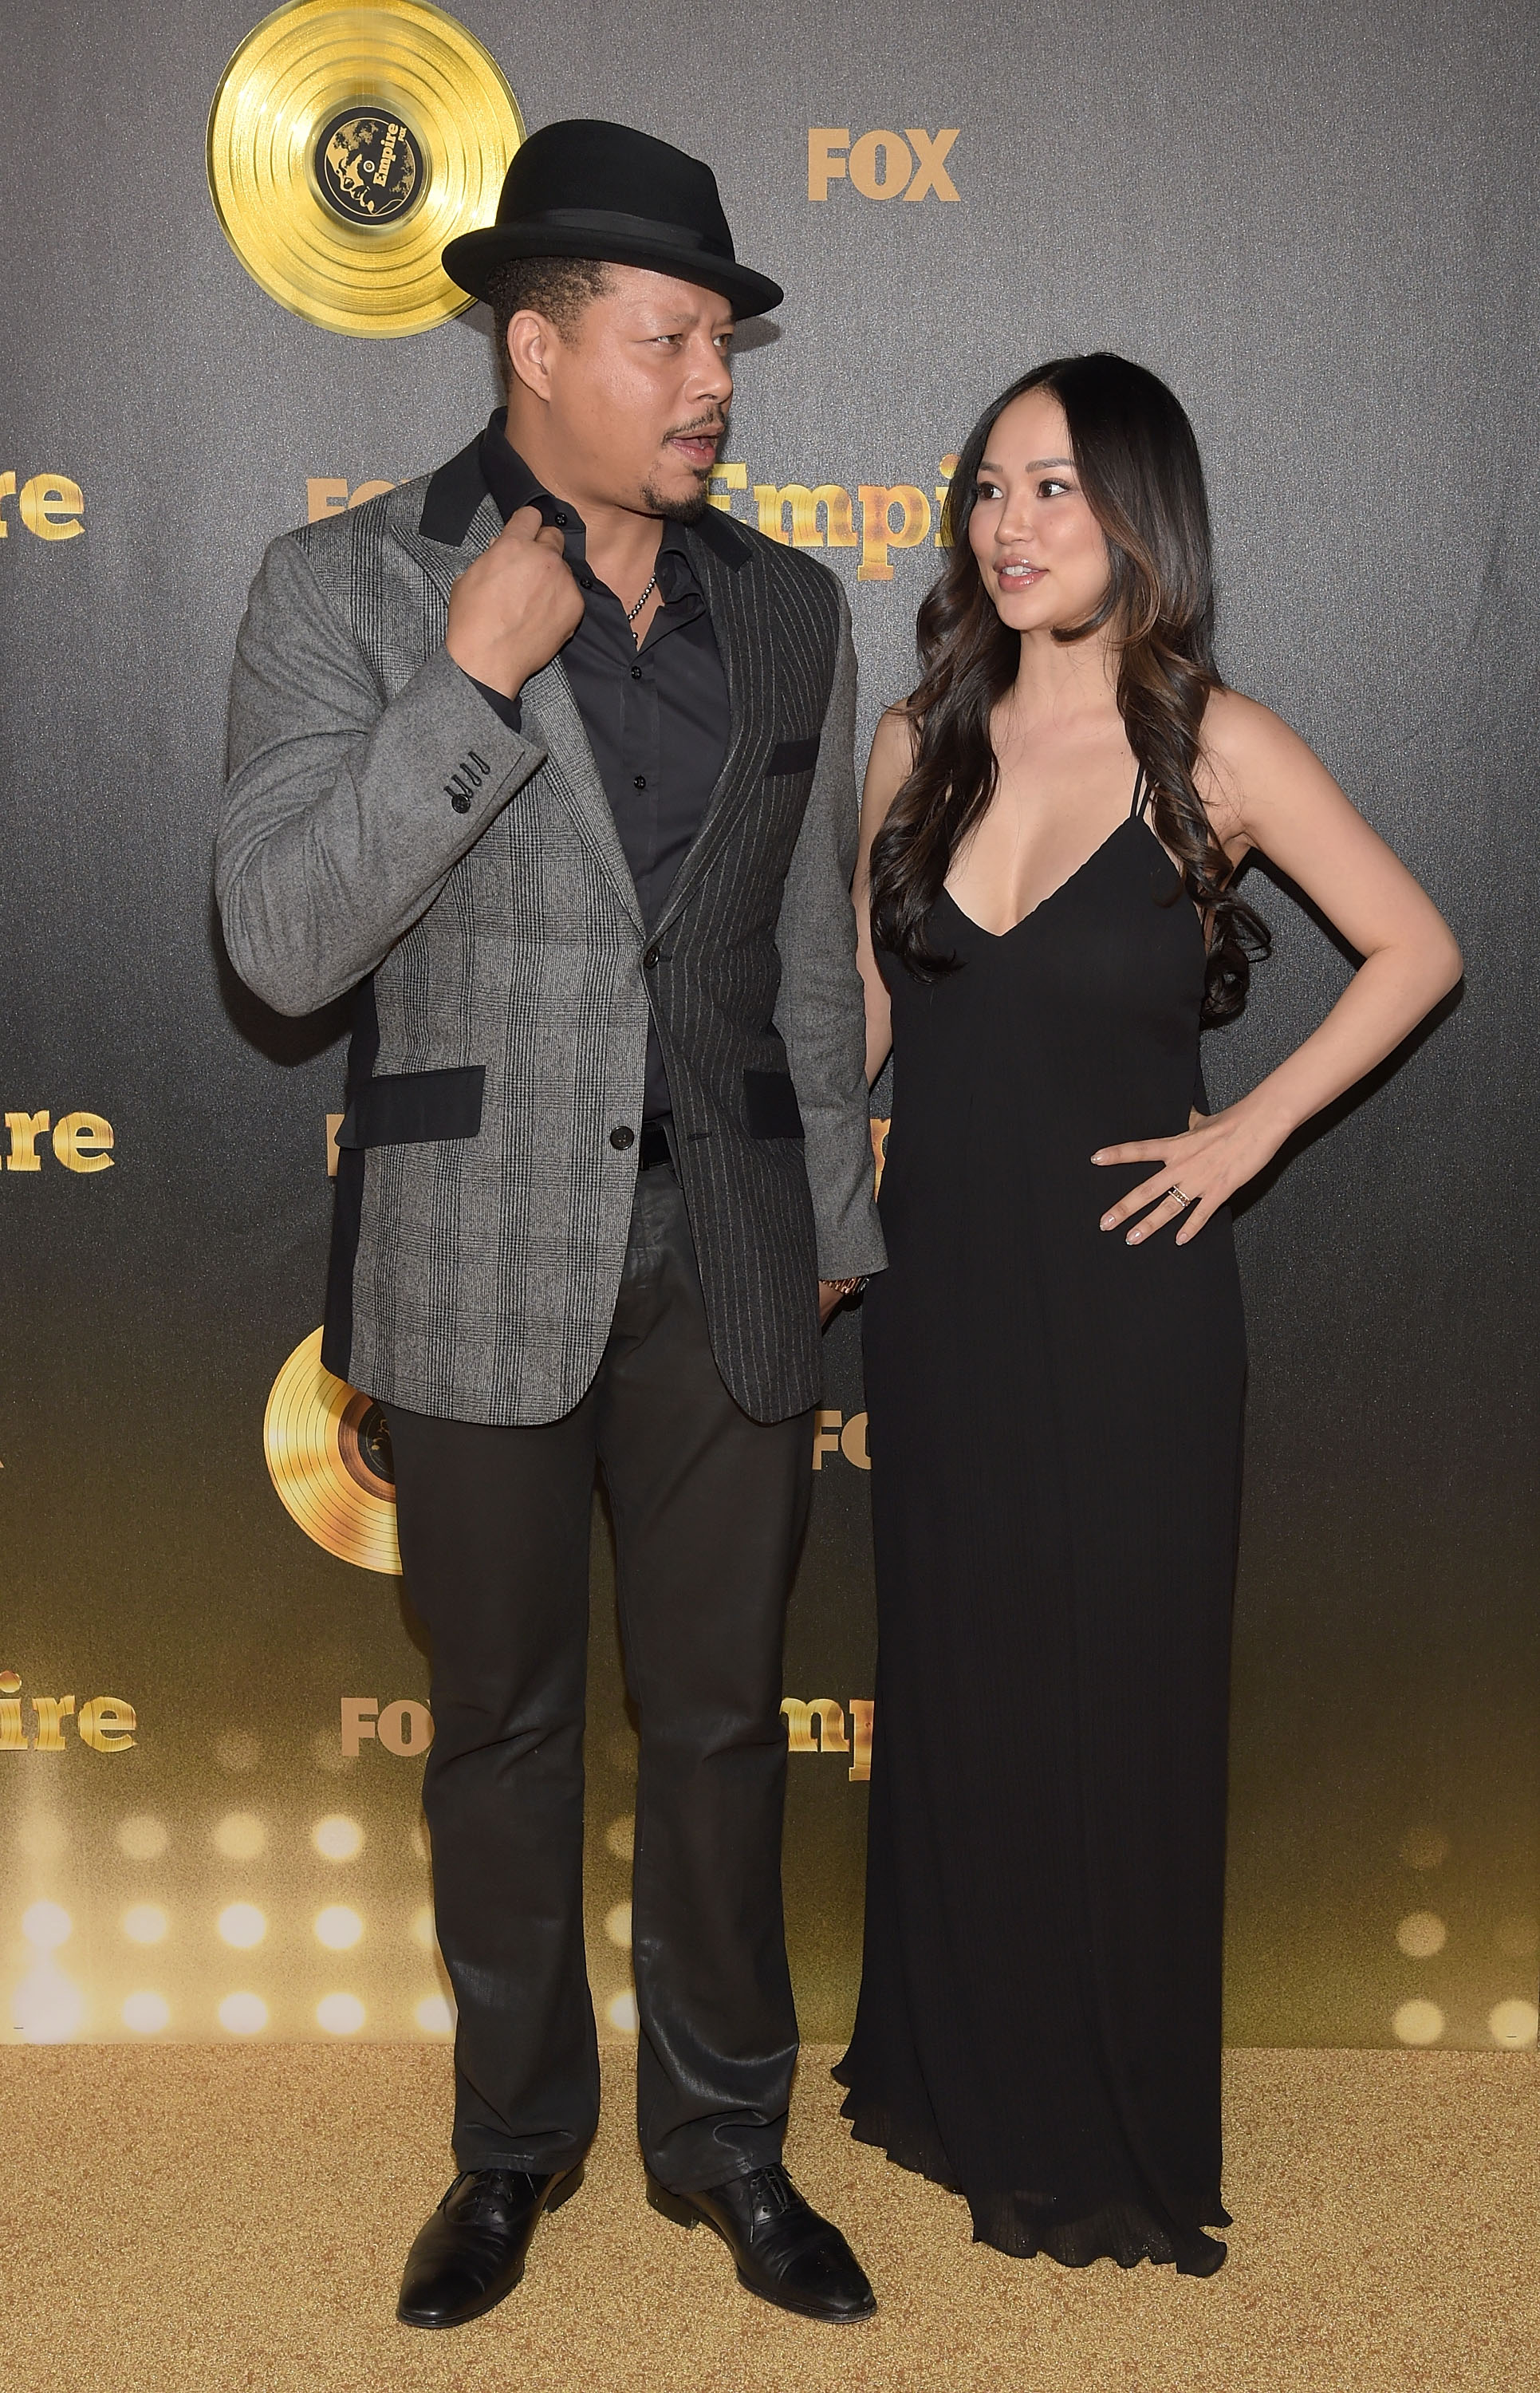 """Terrence Howard and then-wife Mira Pak attending the Hollywood premiere of Fox's """"Empire"""" in January 2015. They divorced the same year. 